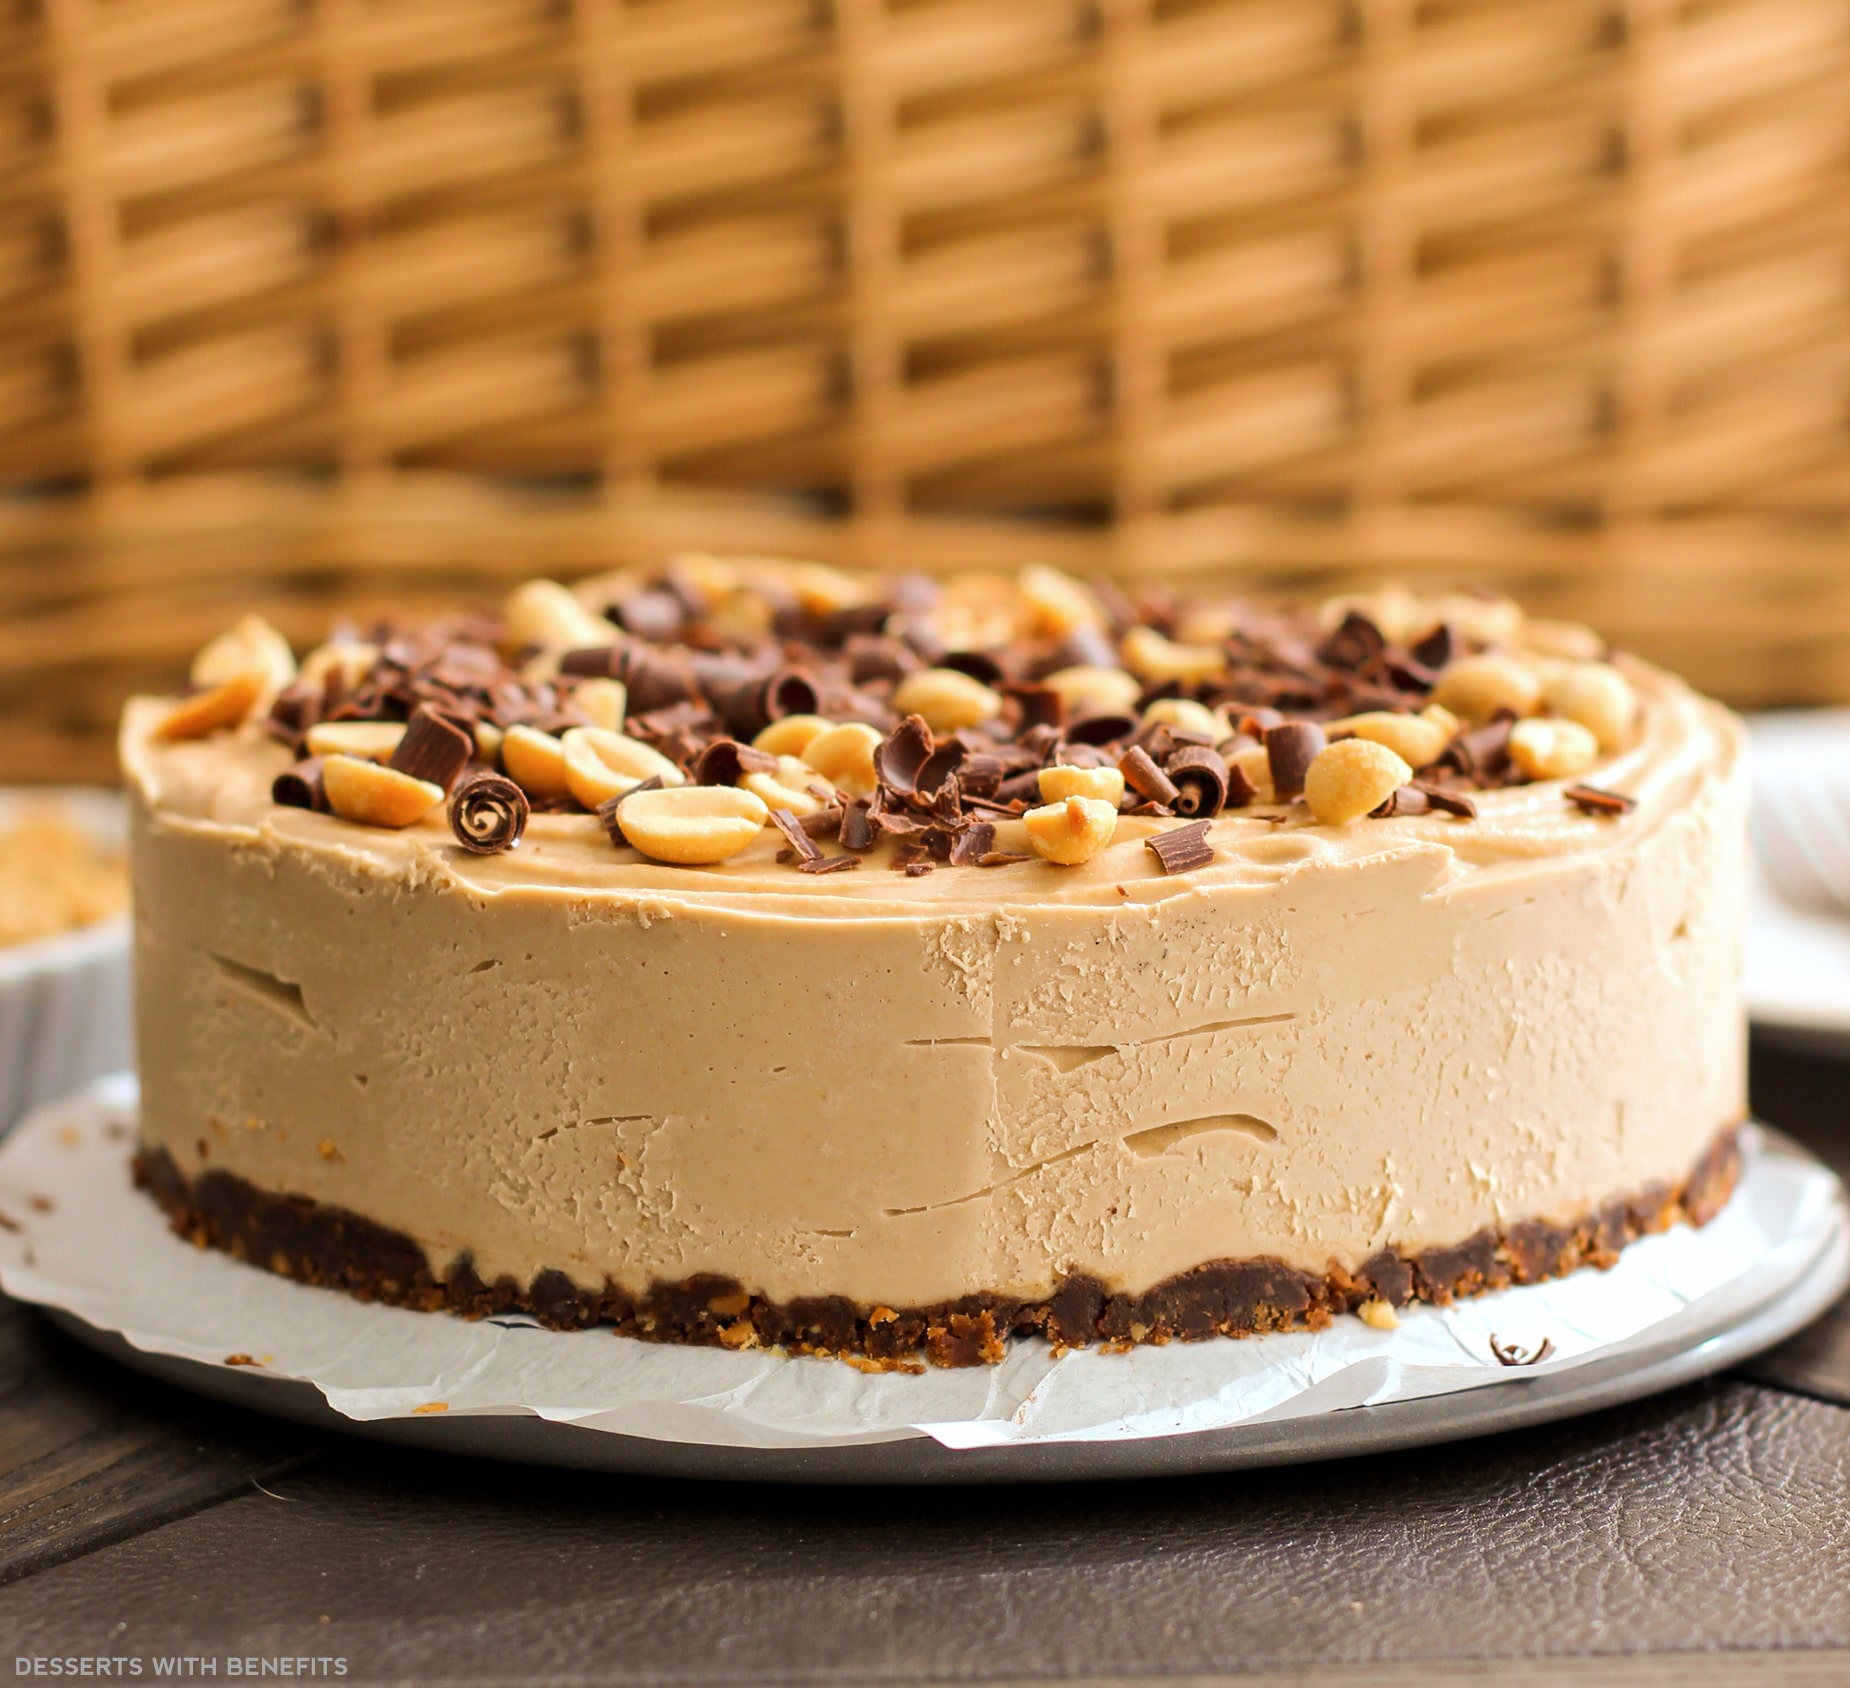 desserts with benefits healthy chocolate peanut butter cheesecake no bake low sugar high